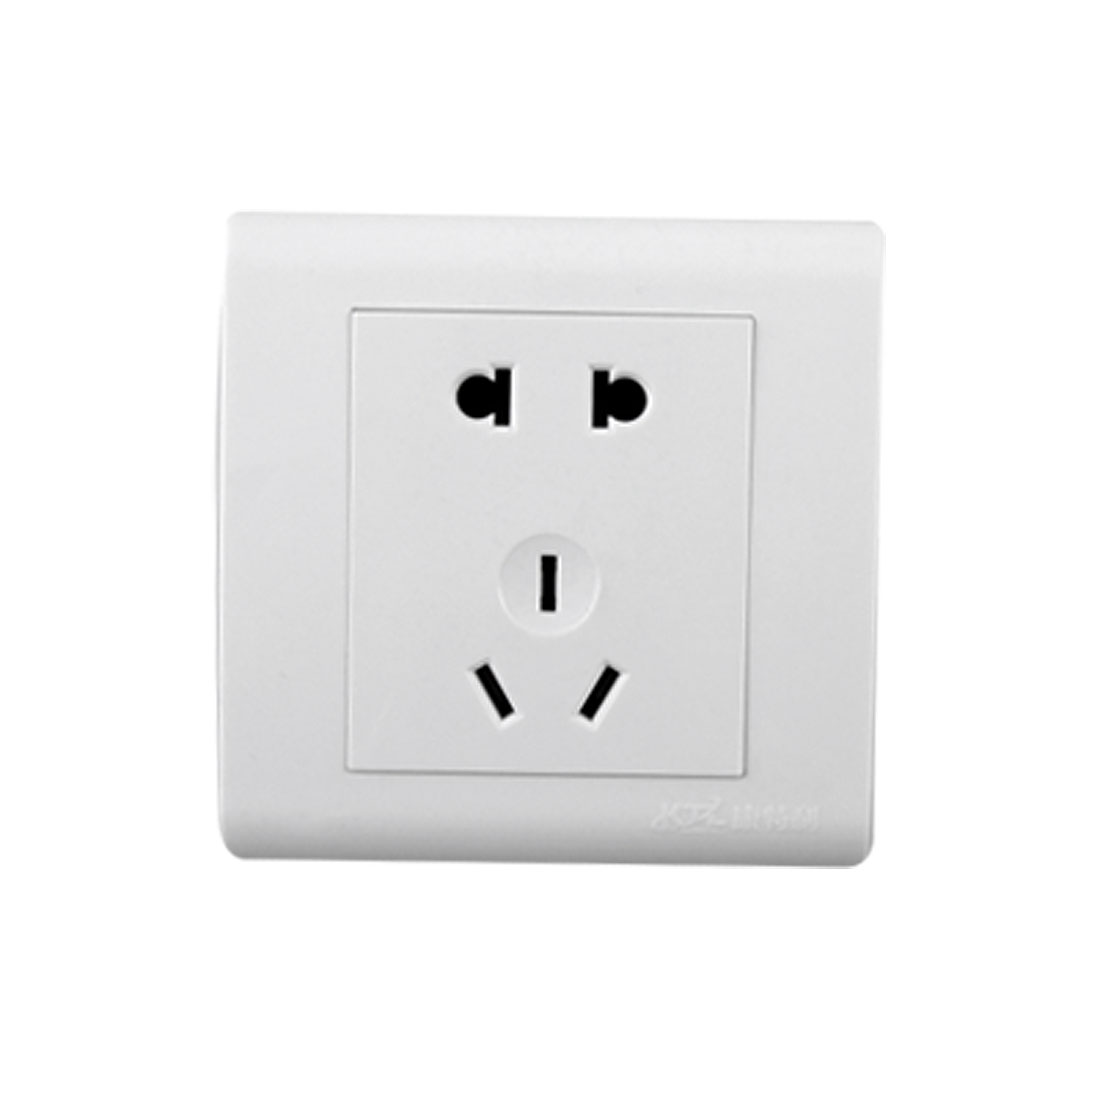 10A 250V 3 Pin AU Outlet 2 Pin US Socket Wall Plate